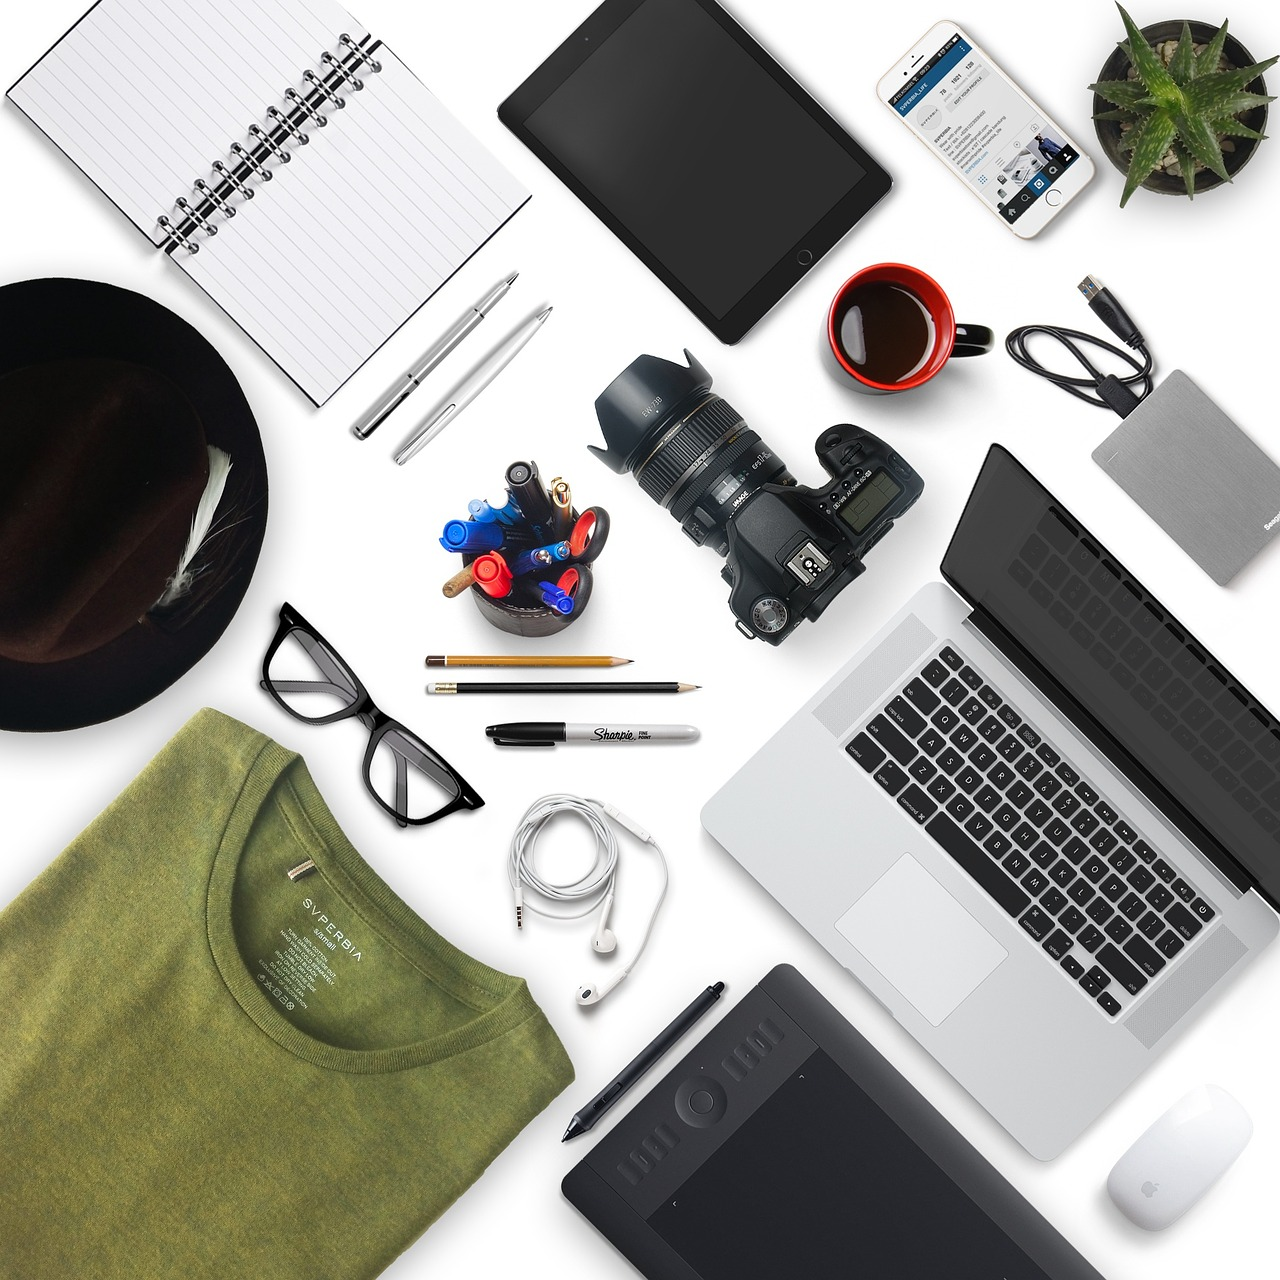 List Building 101: The Tools the Top Bloggers & Digital Entrepreneurs Use